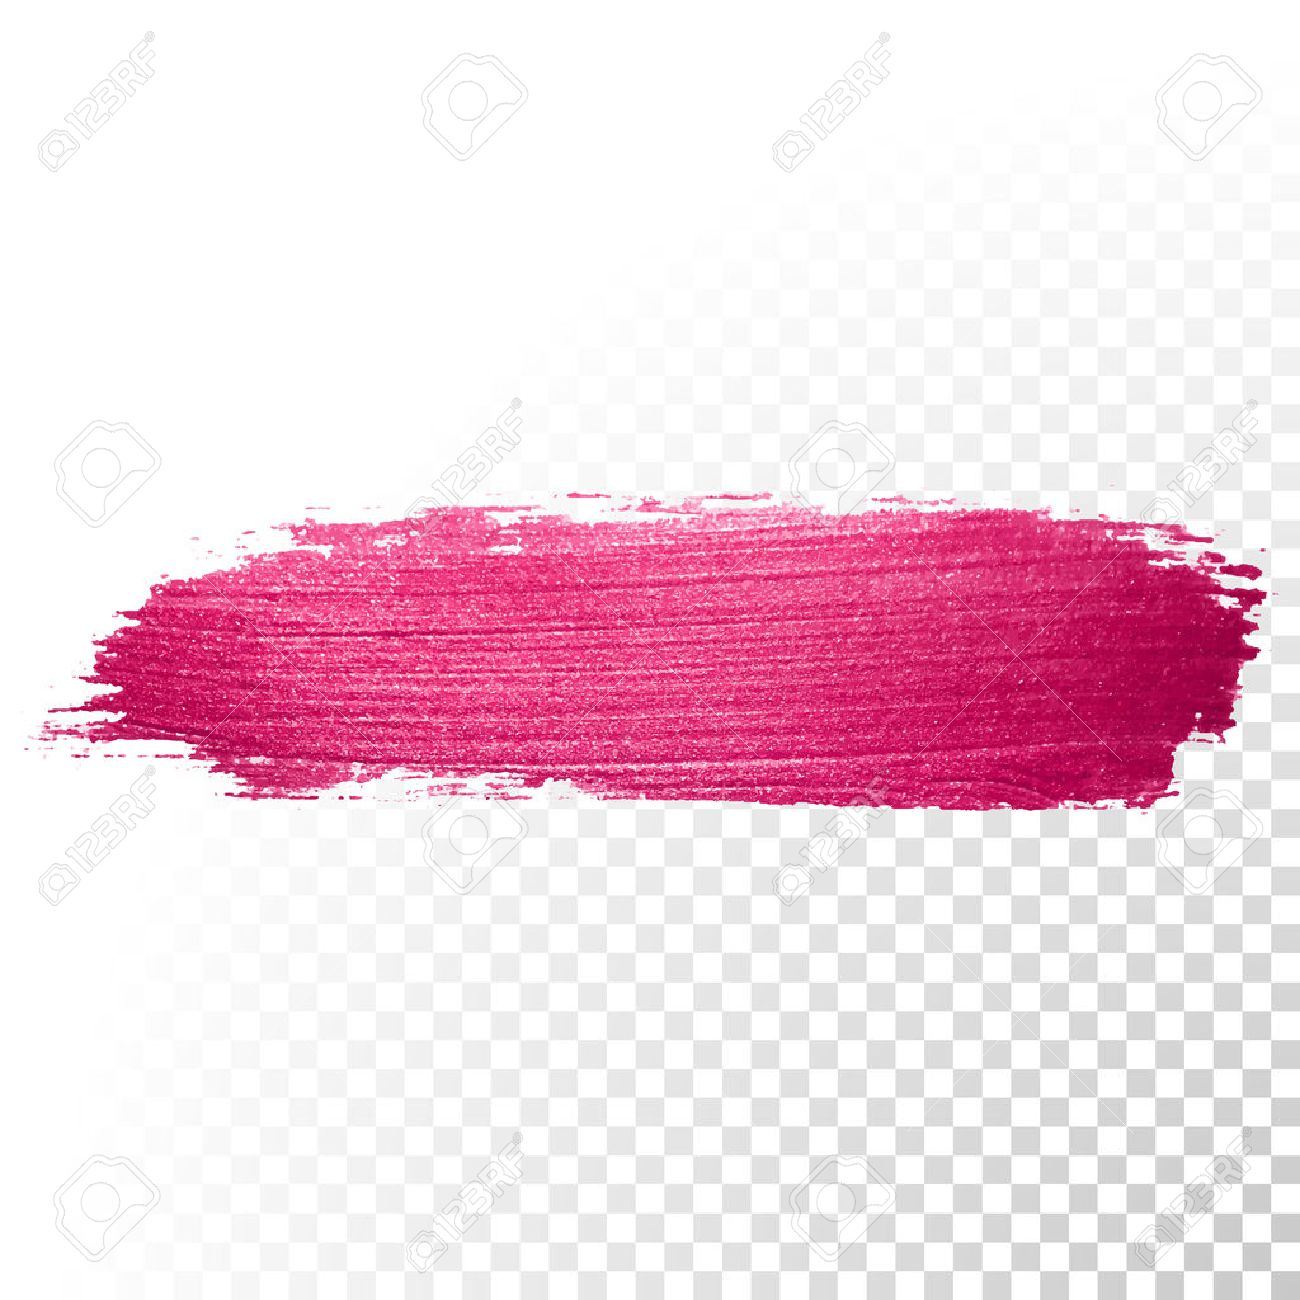 Vector pink watercolor brush stroke. Abstract polish splash trace shape. Red oil paint smear line on transparent background - 52889576